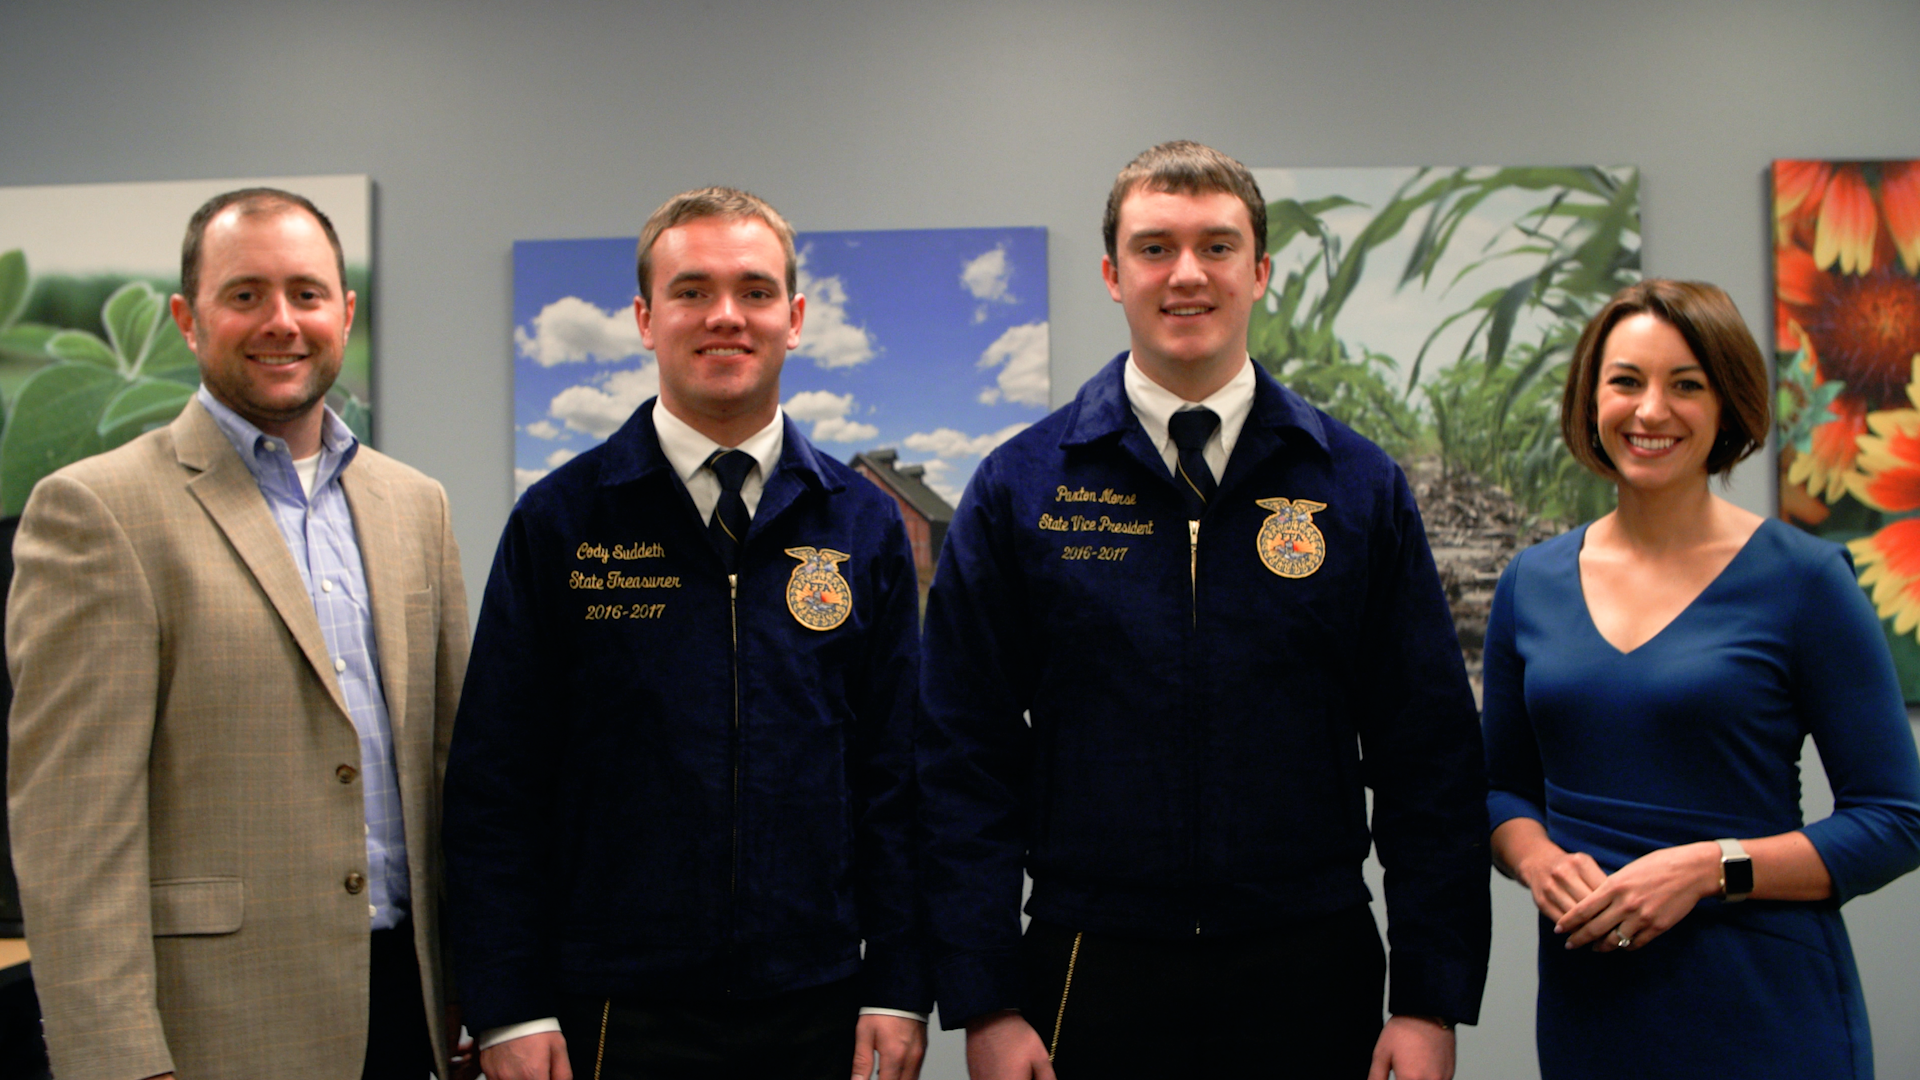 (Pictured from left to right: Brett Haas, Crop Copter Co-owner and Sales Manager, Cody Suddeth, Illinois FFA State Treasurer, and Paxton Morse, Illinois FFA State Vice President, and Cynthia Bruno, Agrible, Inc. Chief Strategy Officer.)